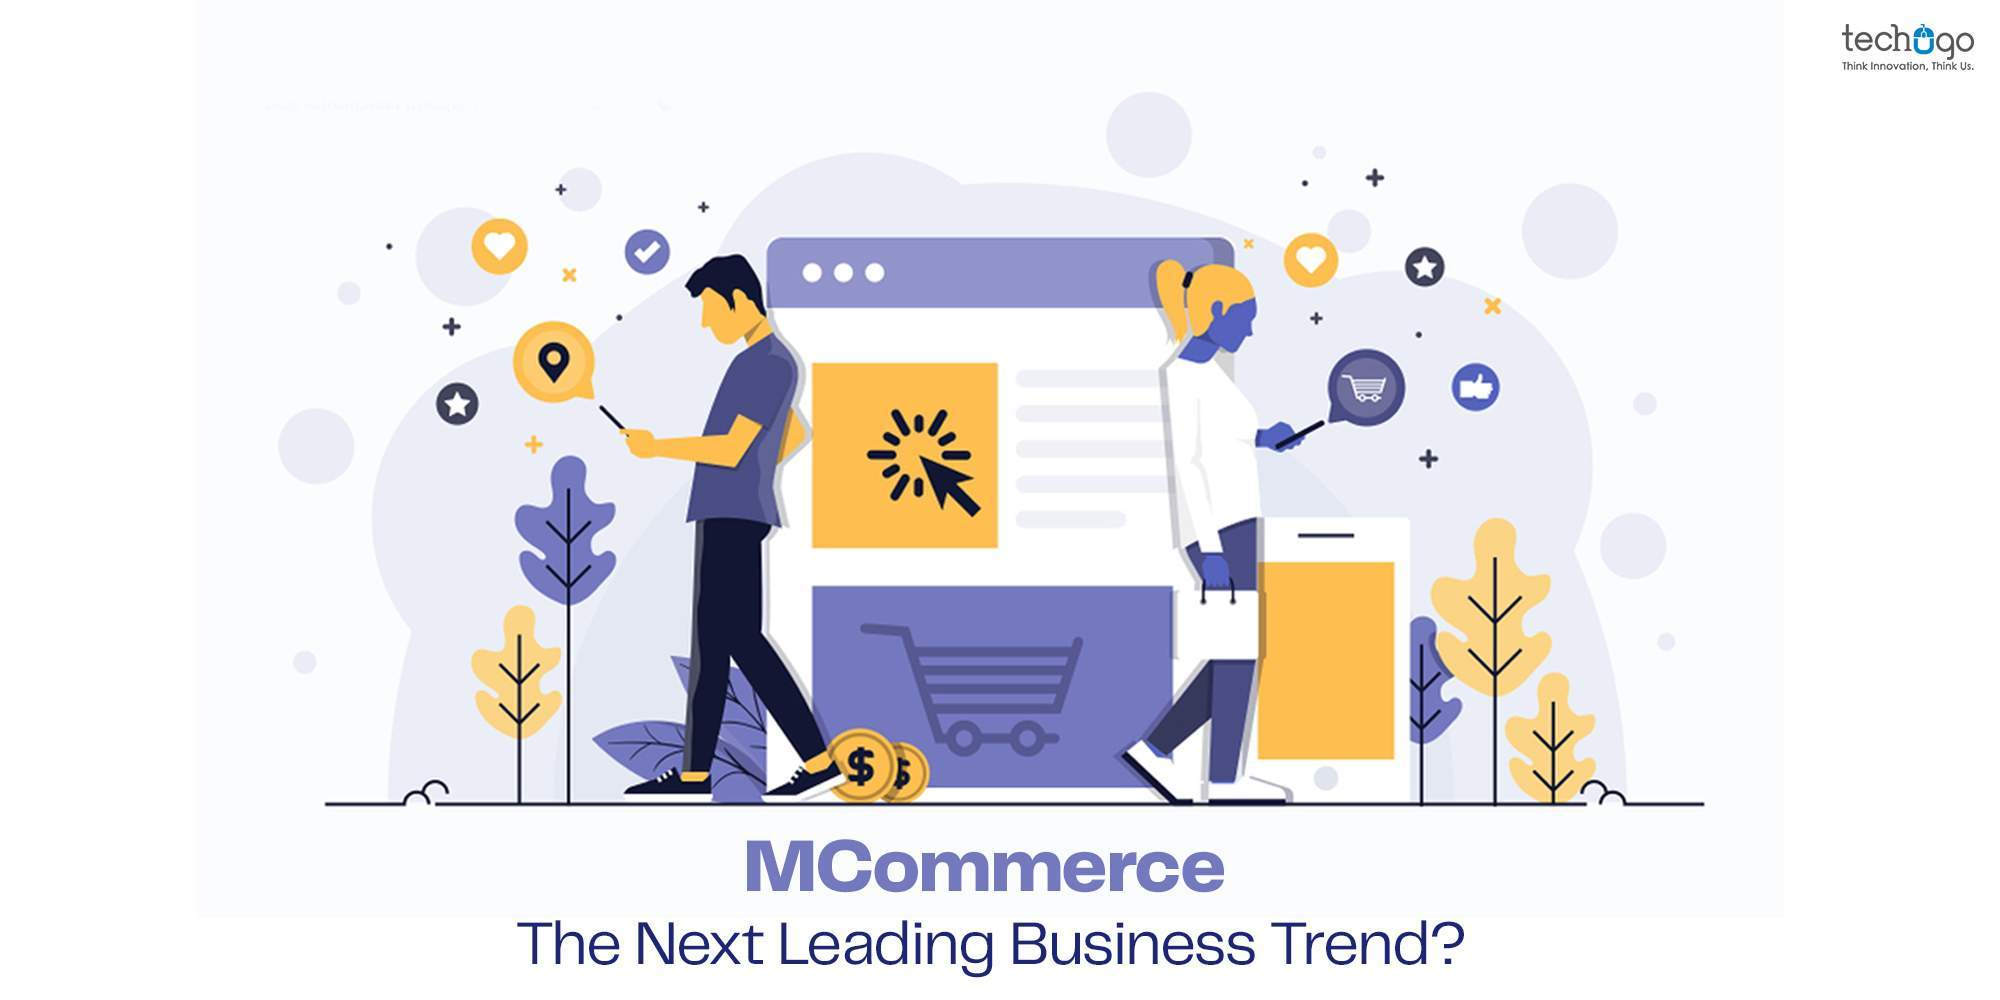 mCommerce: The Next Leading Business Trend?